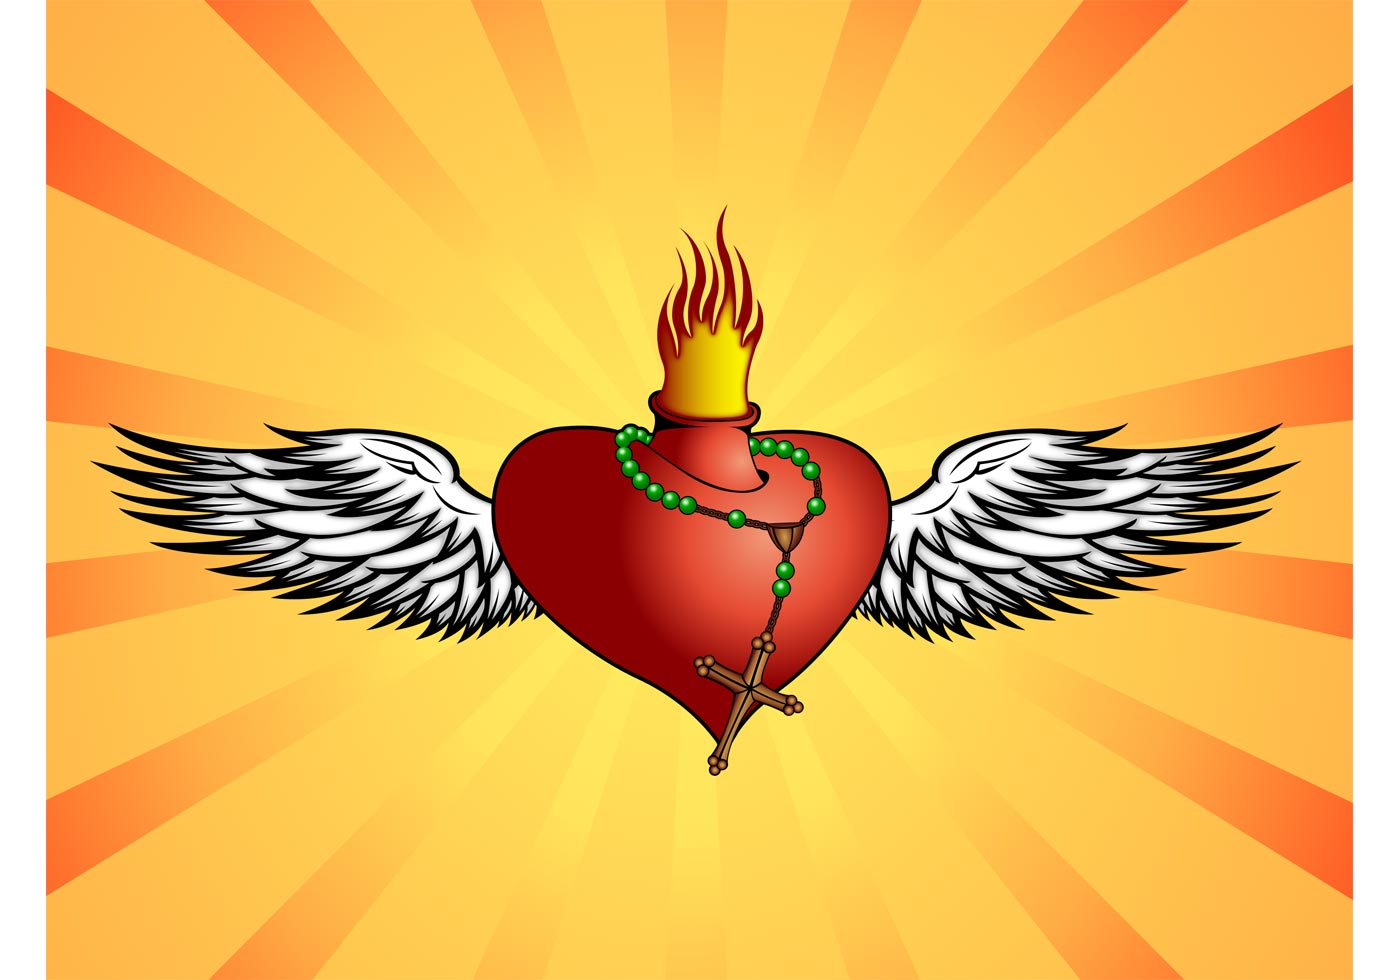 Burning Heart - Download Free Vector Art, Stock Graphics & Images